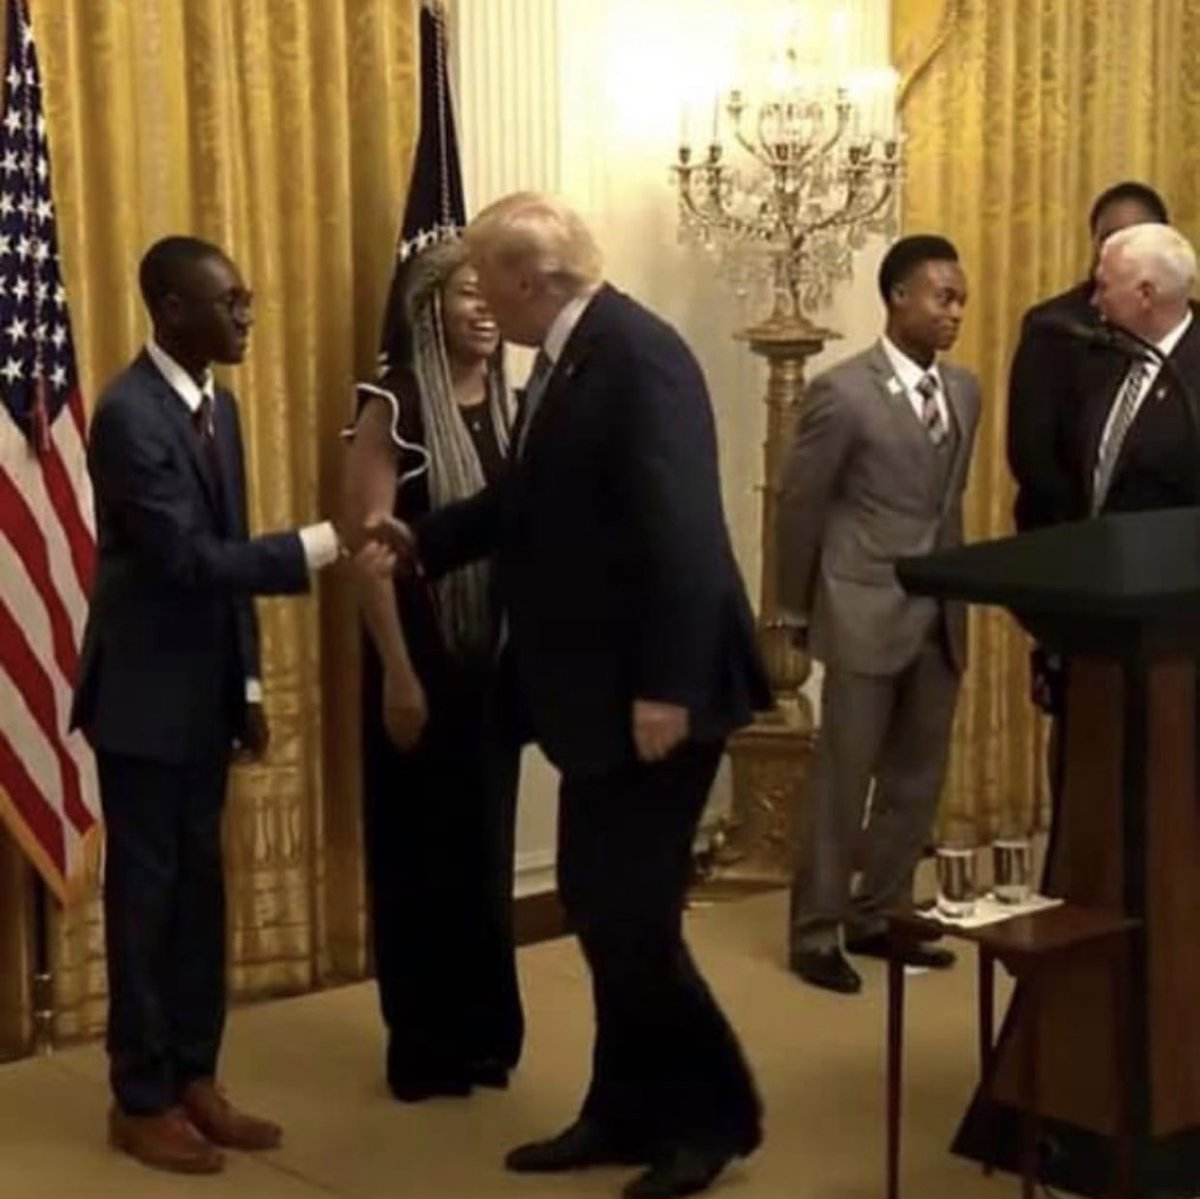 Our National Director of Advancement shaking @realDonaldTrump's hand.  This is absolutely amazing.  We love our President!  🇺🇸